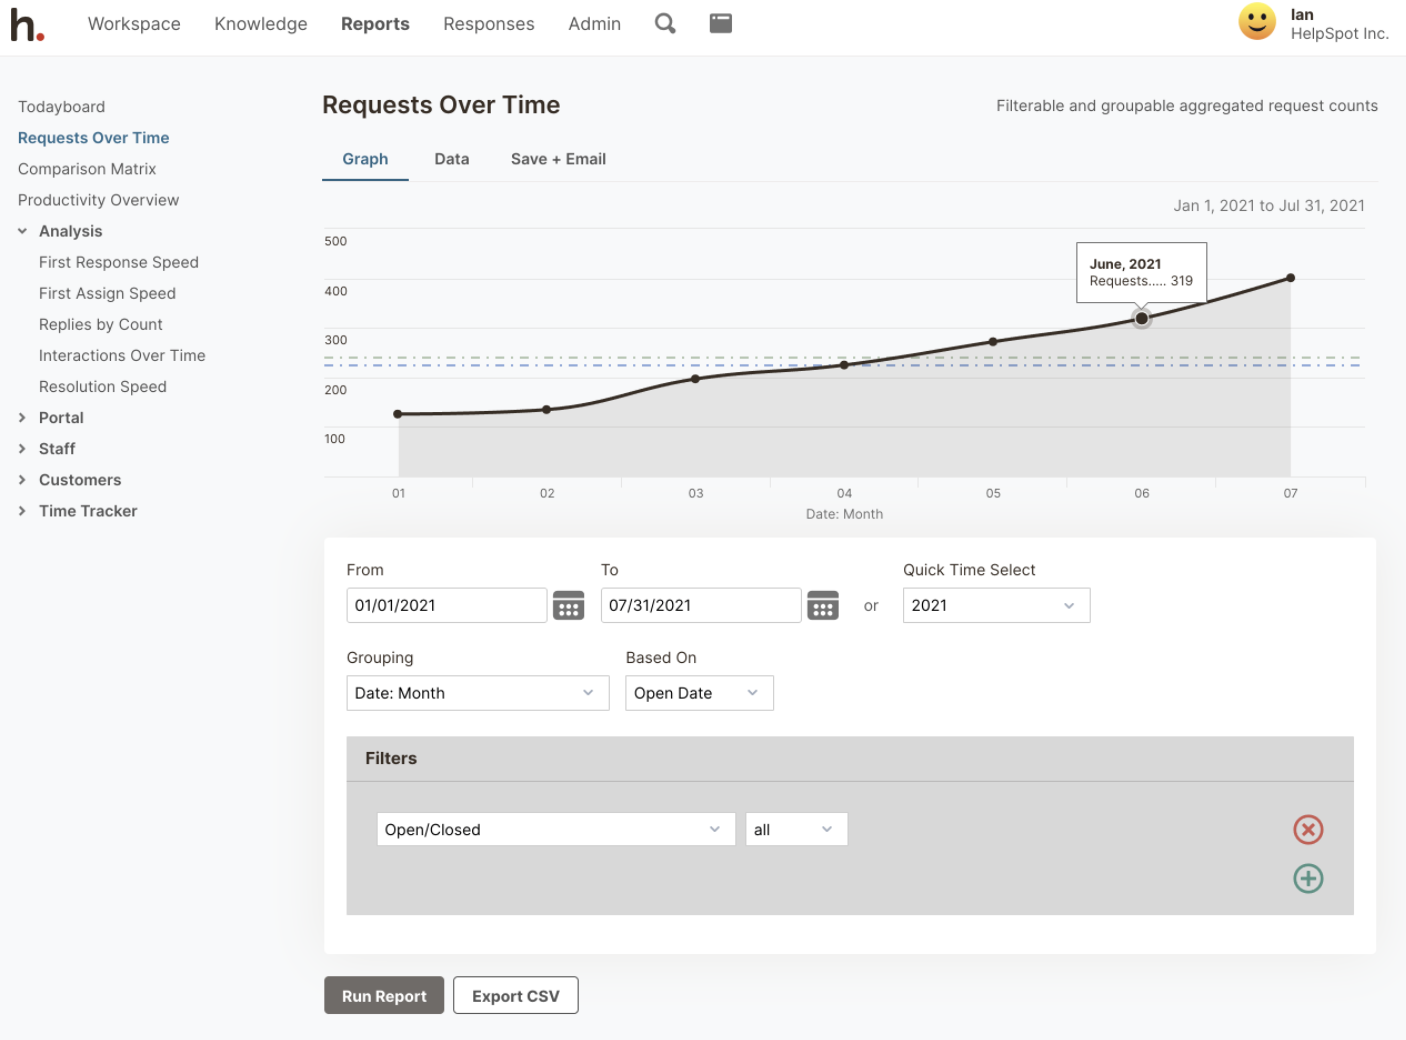 HelpSpot's Request Over Time Analytics